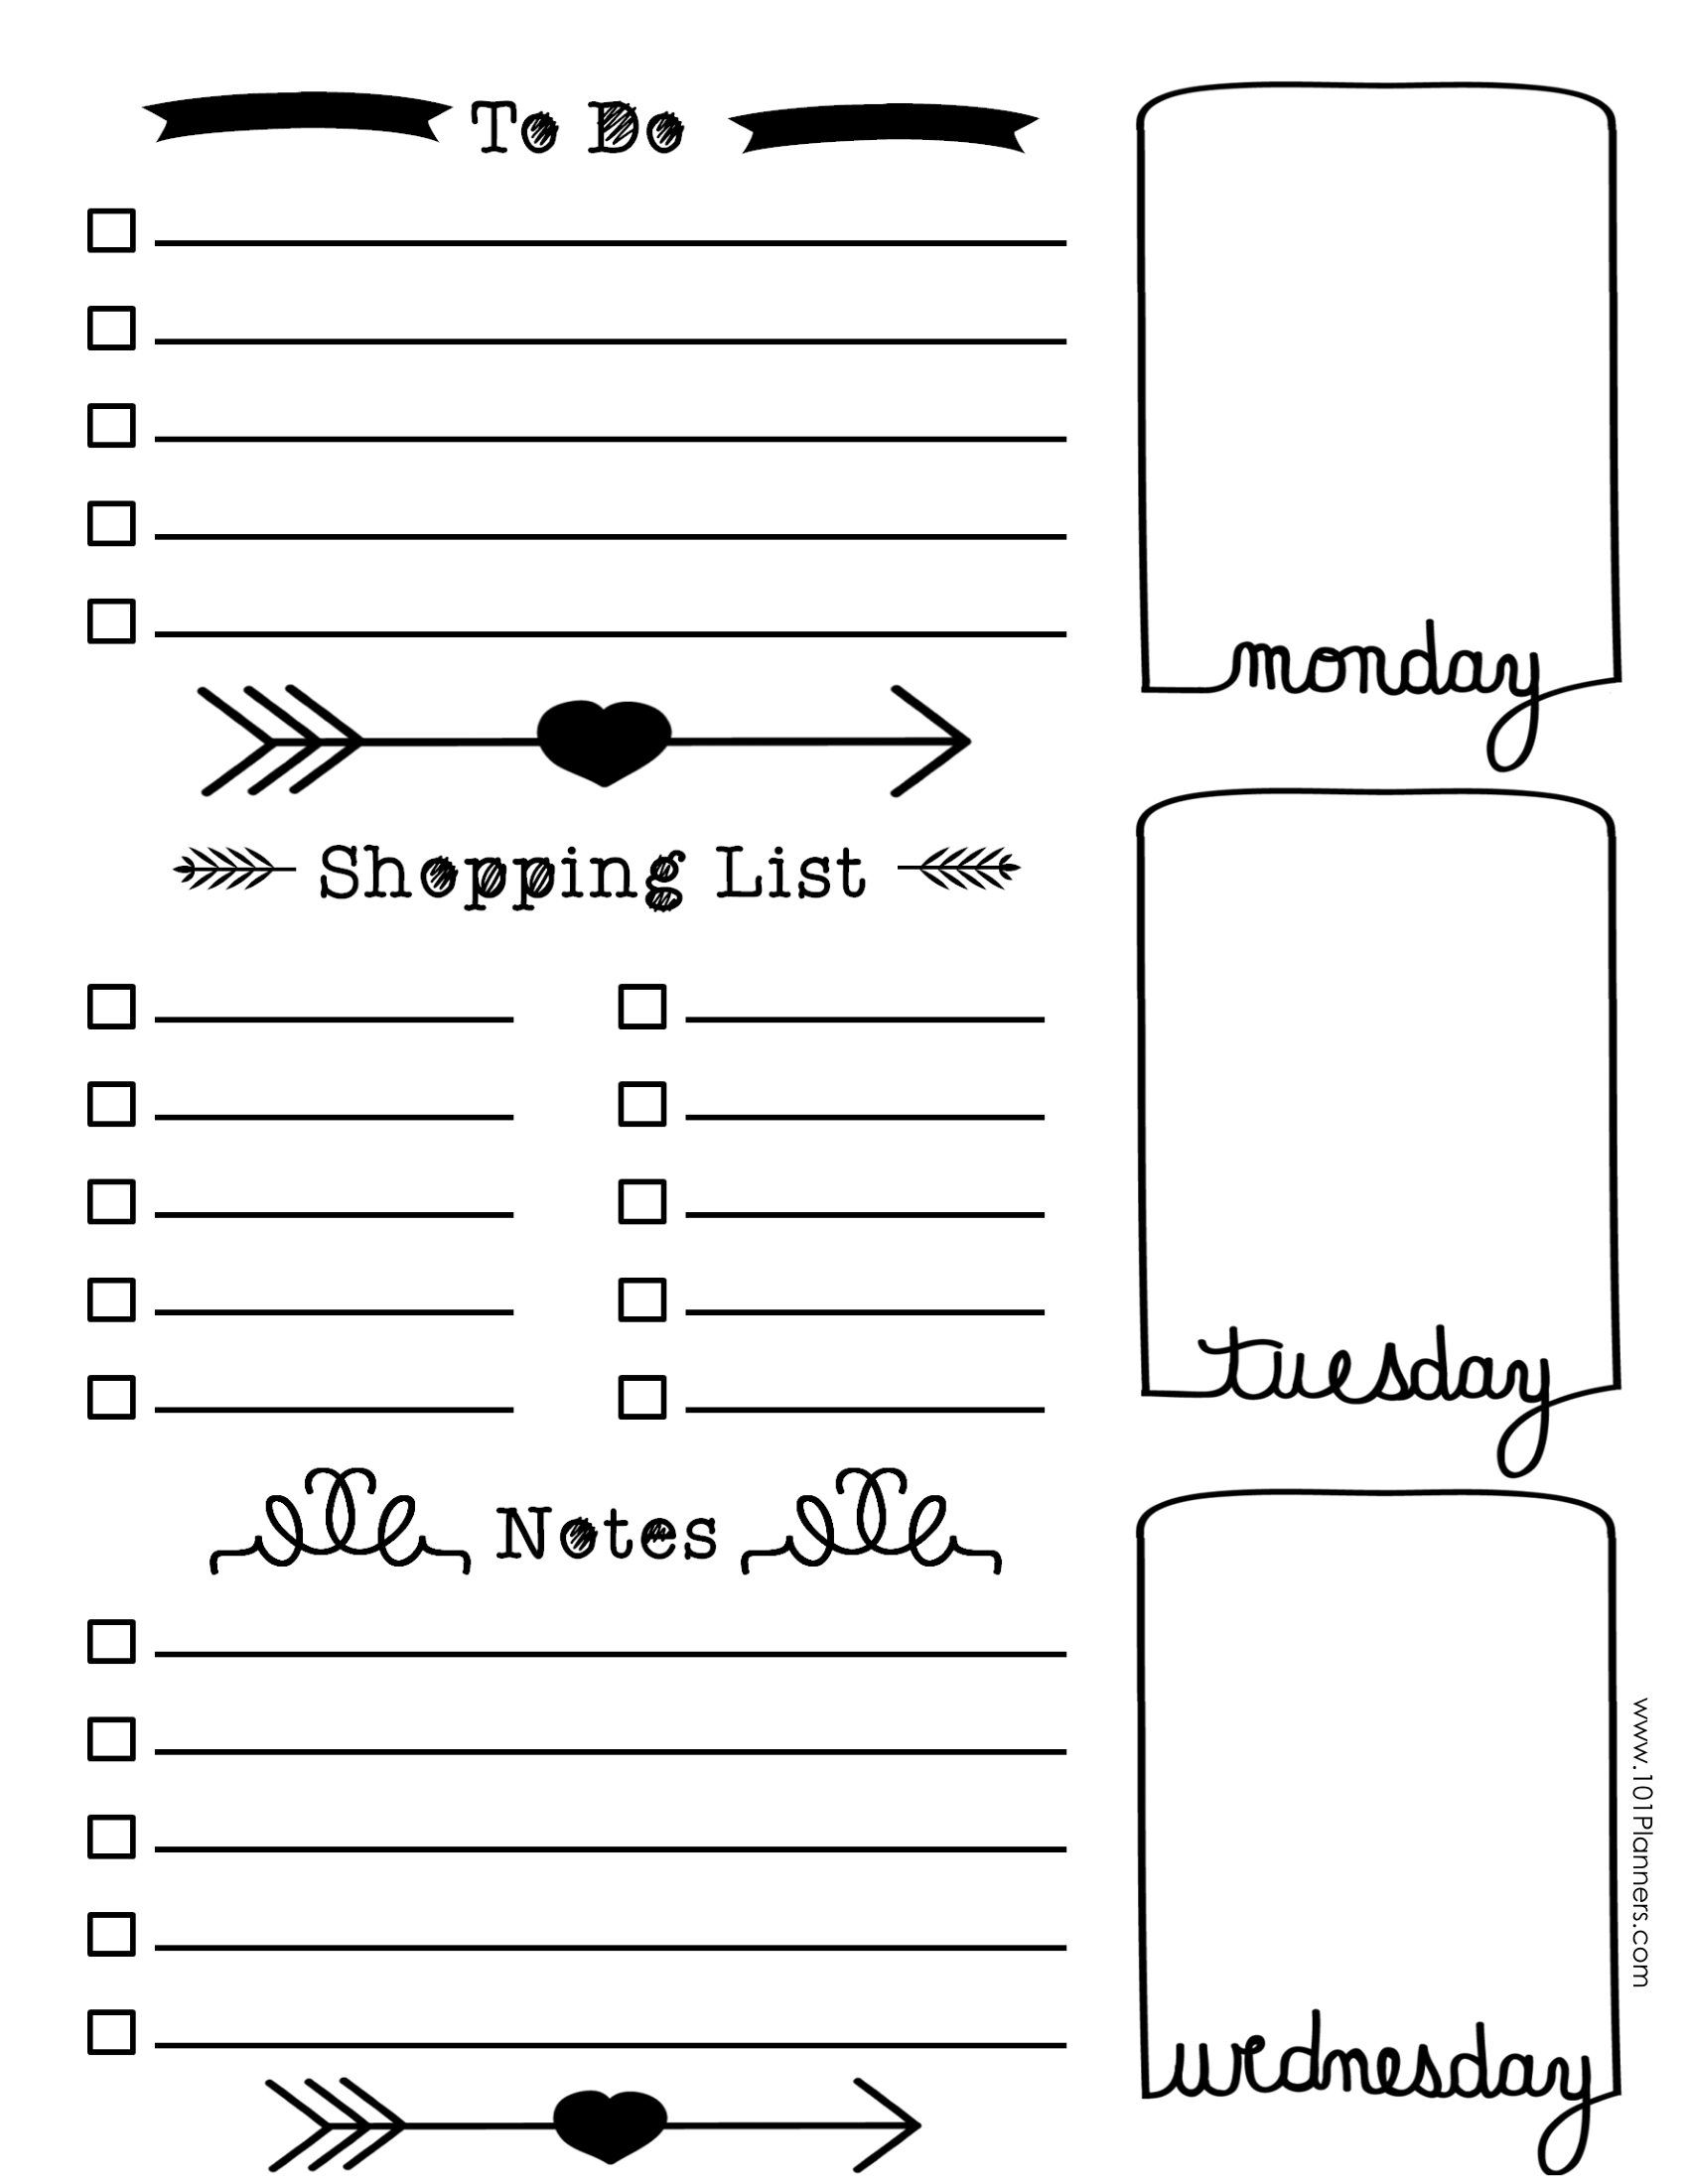 image result for bullet journal templates smashbook travel bullet